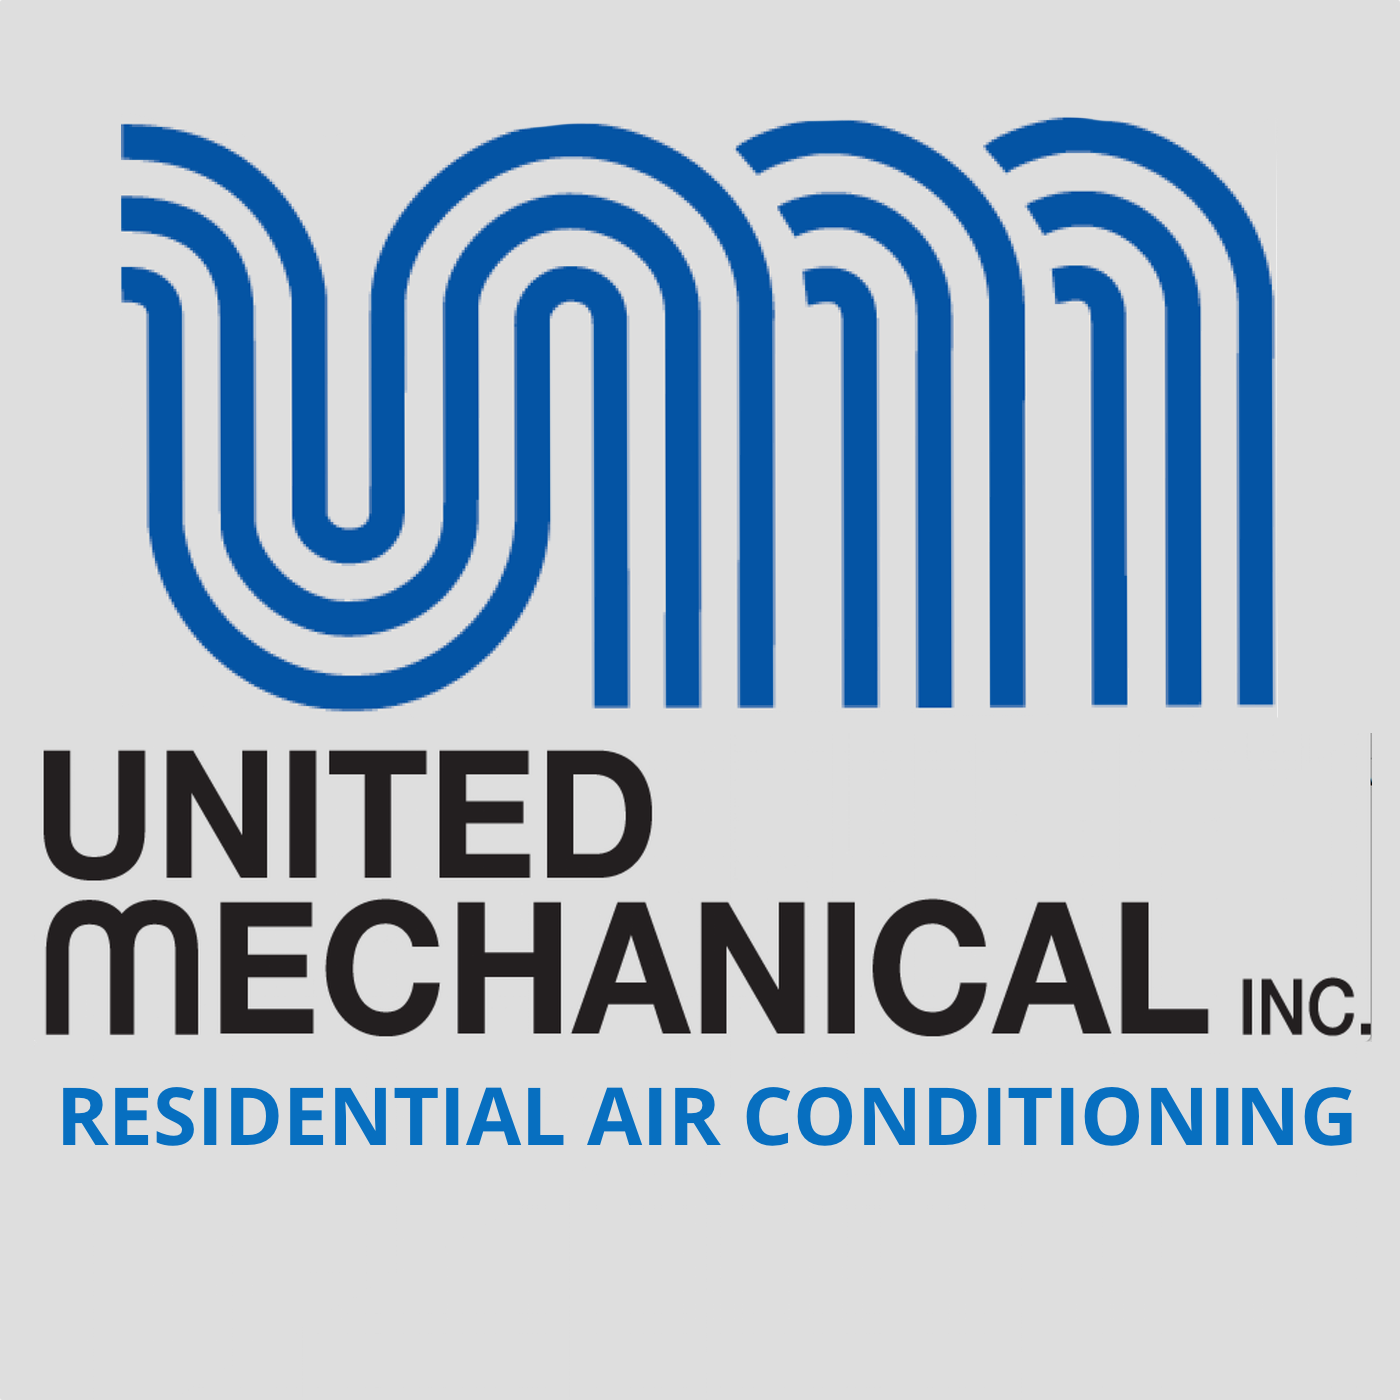 United Mechanical Inc.